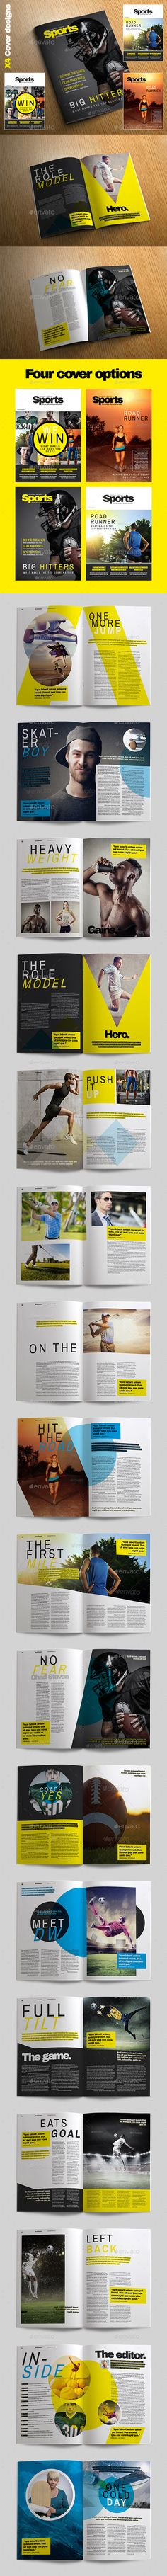 Sports Magazine is a professional quality and easy to use magazine template. Packed full or great original page designs. Sports magazine is ideal for any sporting genre, use the wide variety of unique page layouts to create your own high quality sporting magazine.